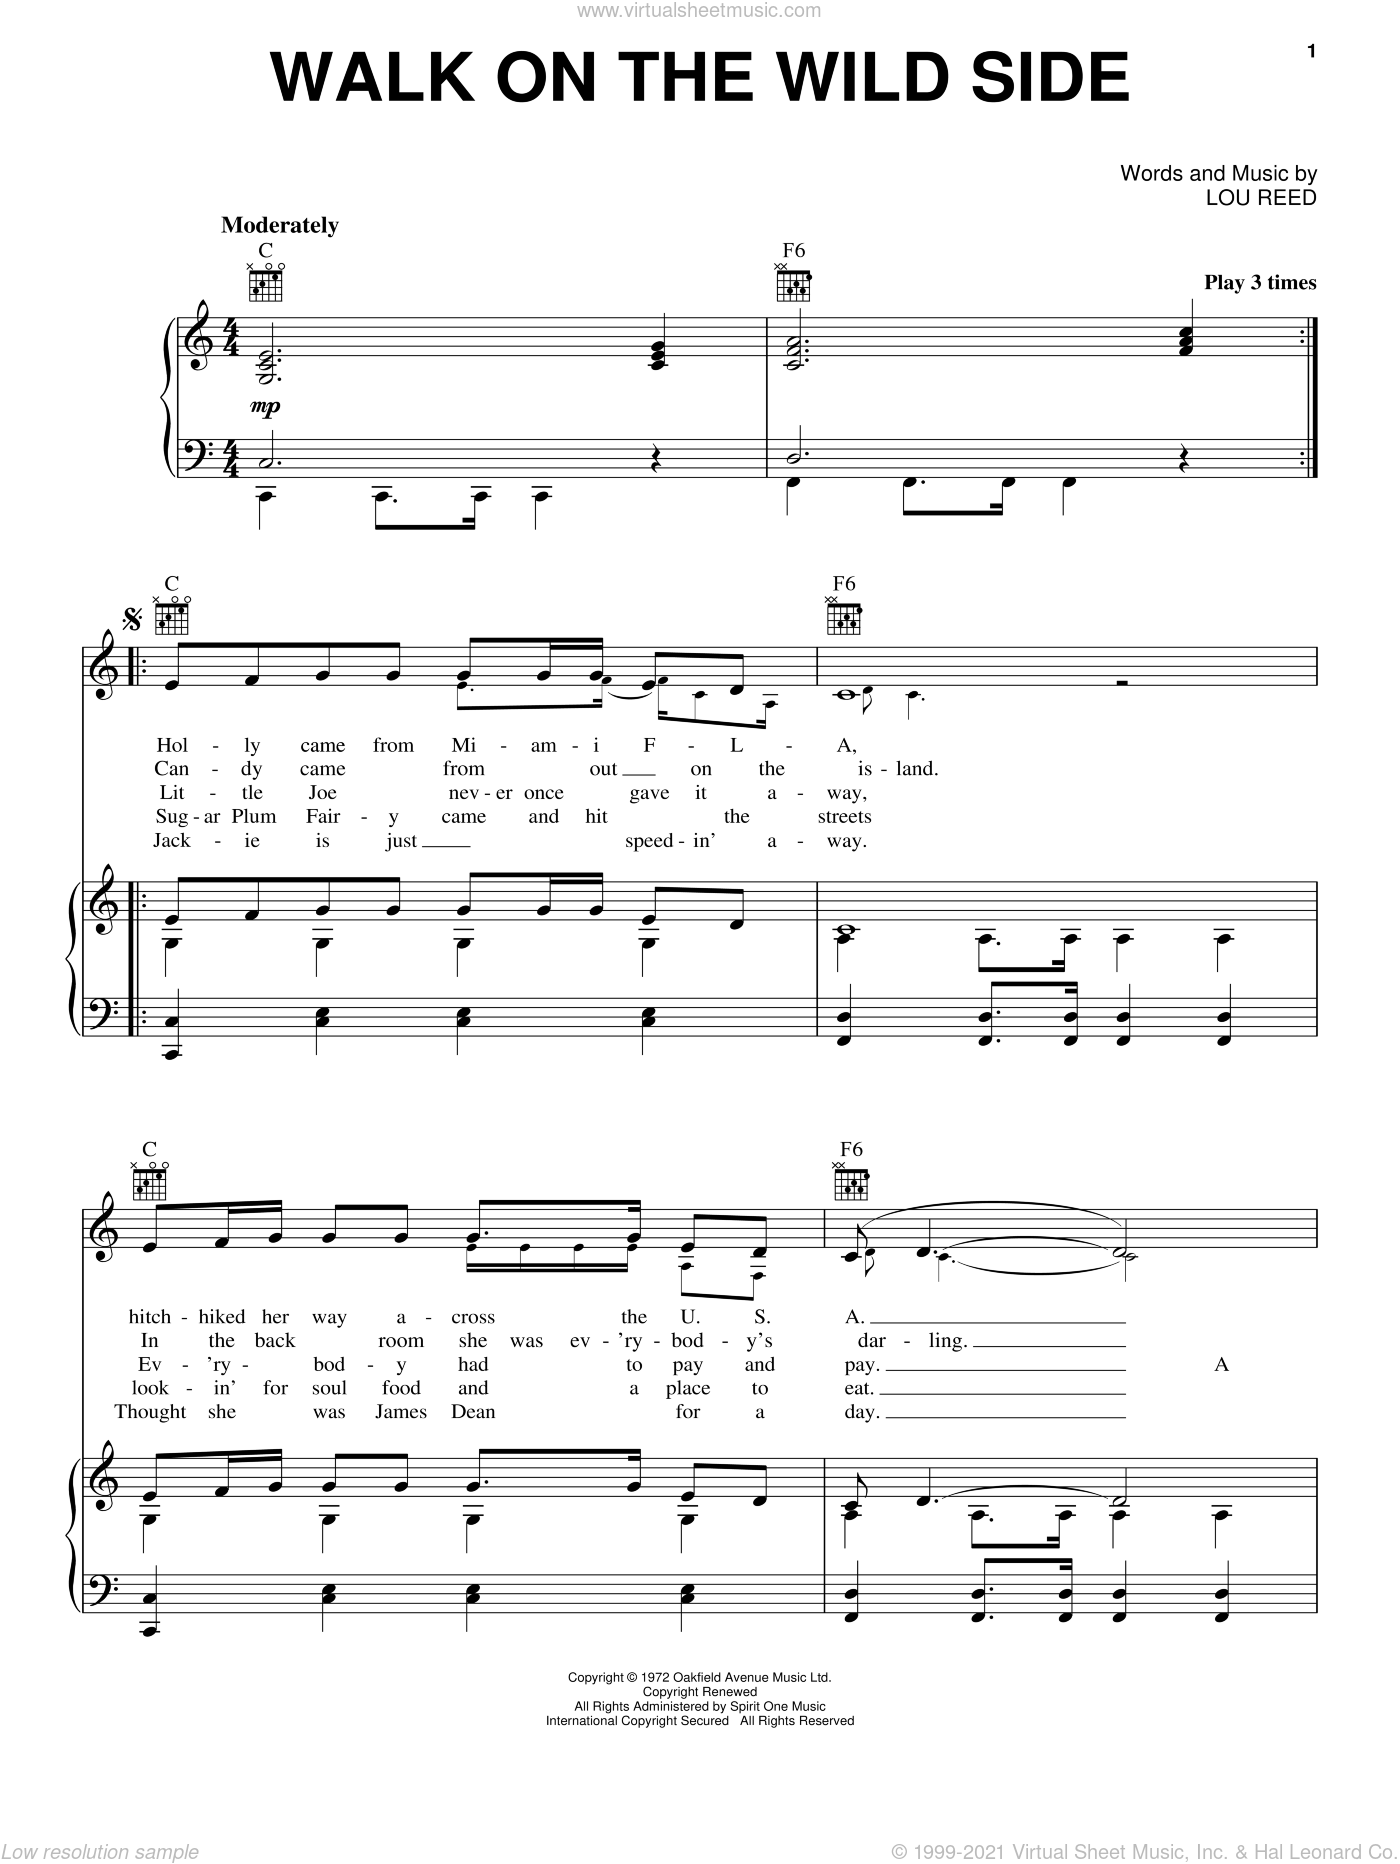 Walk On The Wild Side sheet music for voice, piano or guitar by Lou Reed. Score Image Preview.